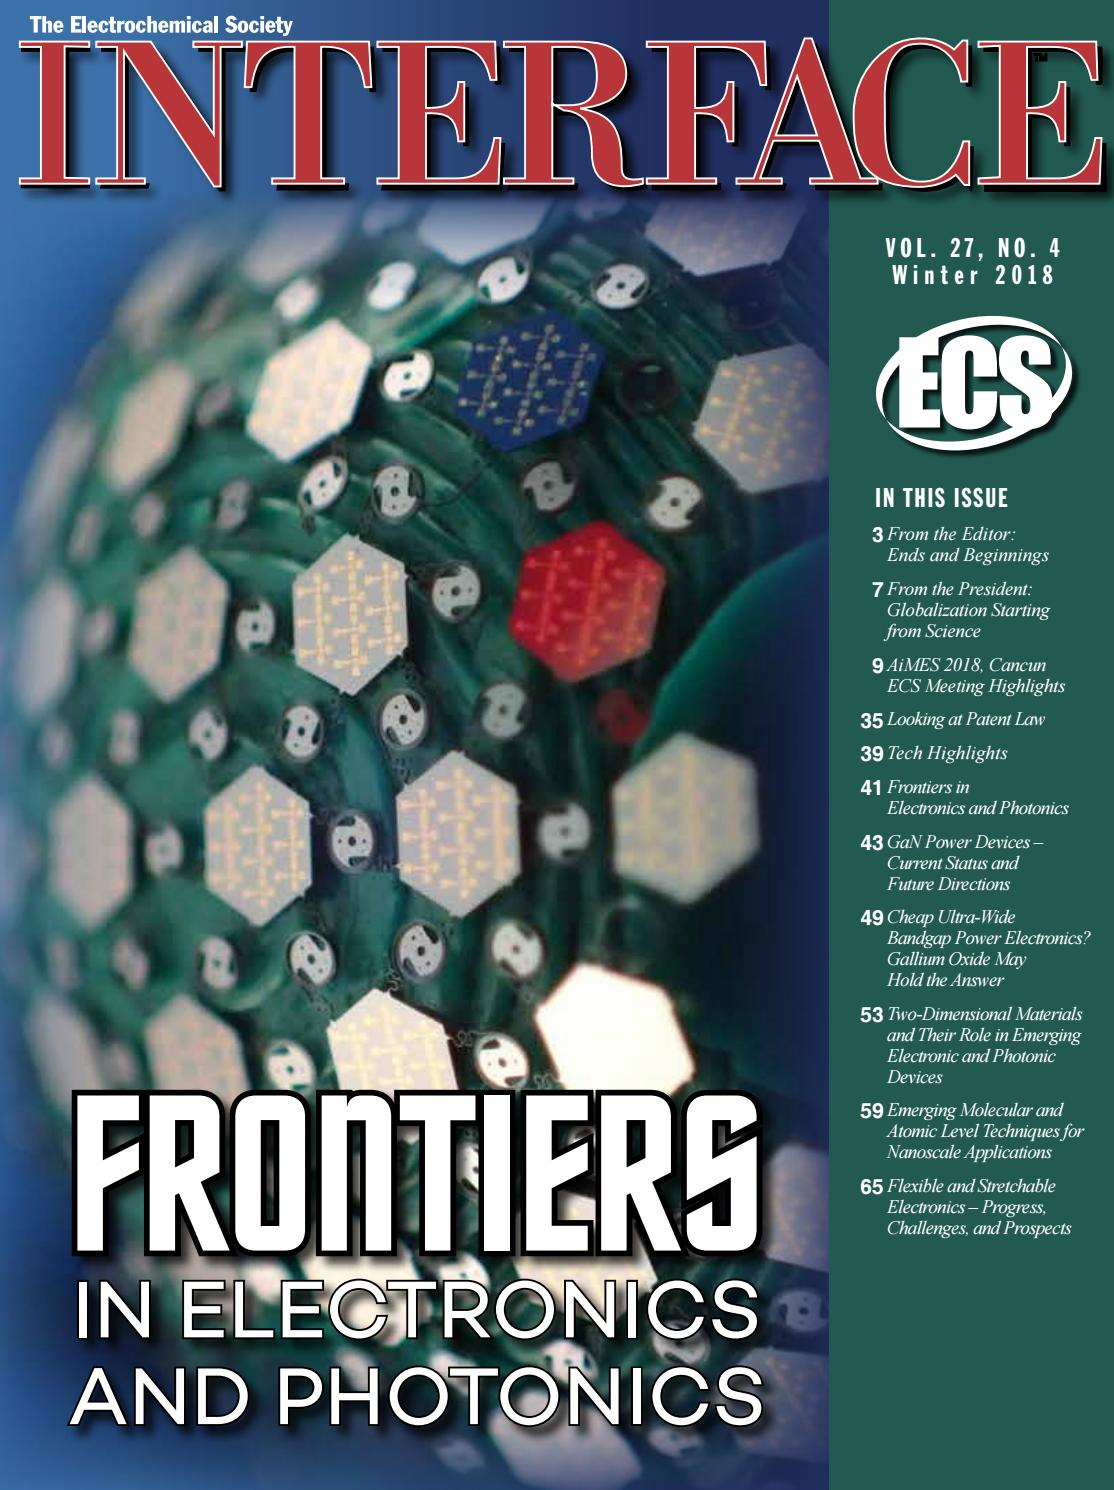 2dcf66b8b65 Interface Vol. 27, No 4., Winter 2018 by The Electrochemical Society ...